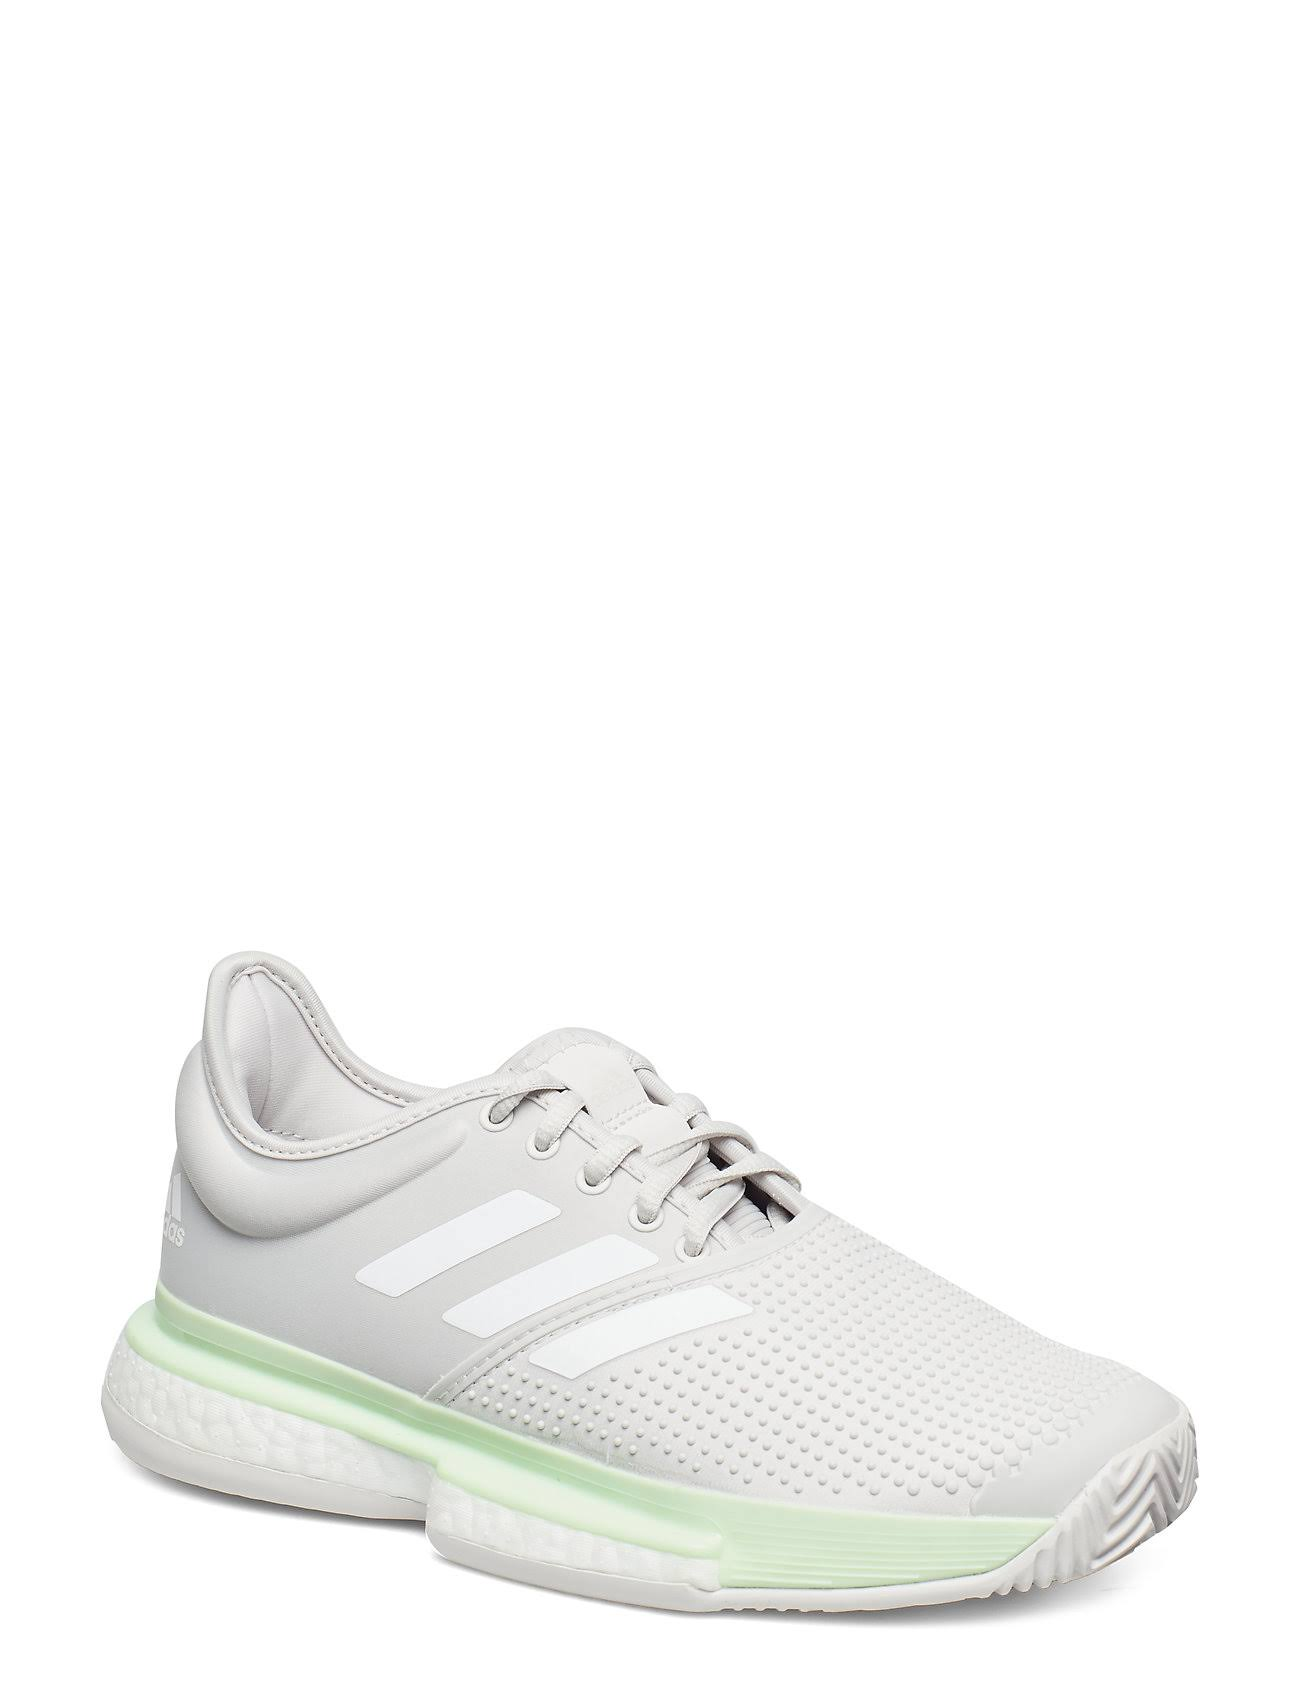 Adidas SoleCourt Shoes Tennis - Women